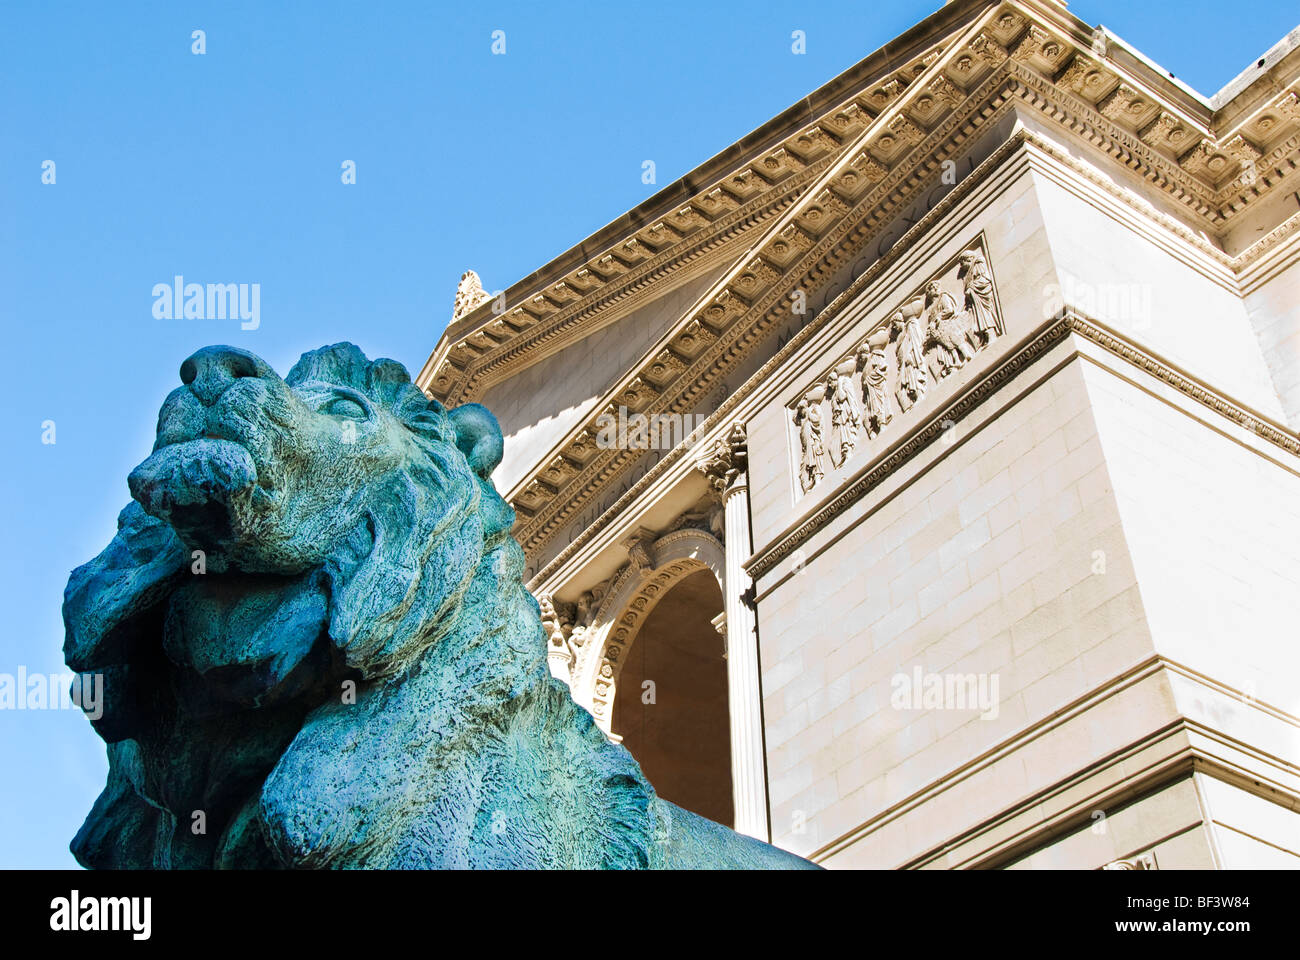 Bronze lion statue at the entrance of the Art Institute of Chicago, Chicago, Illinois, USA - Stock Image